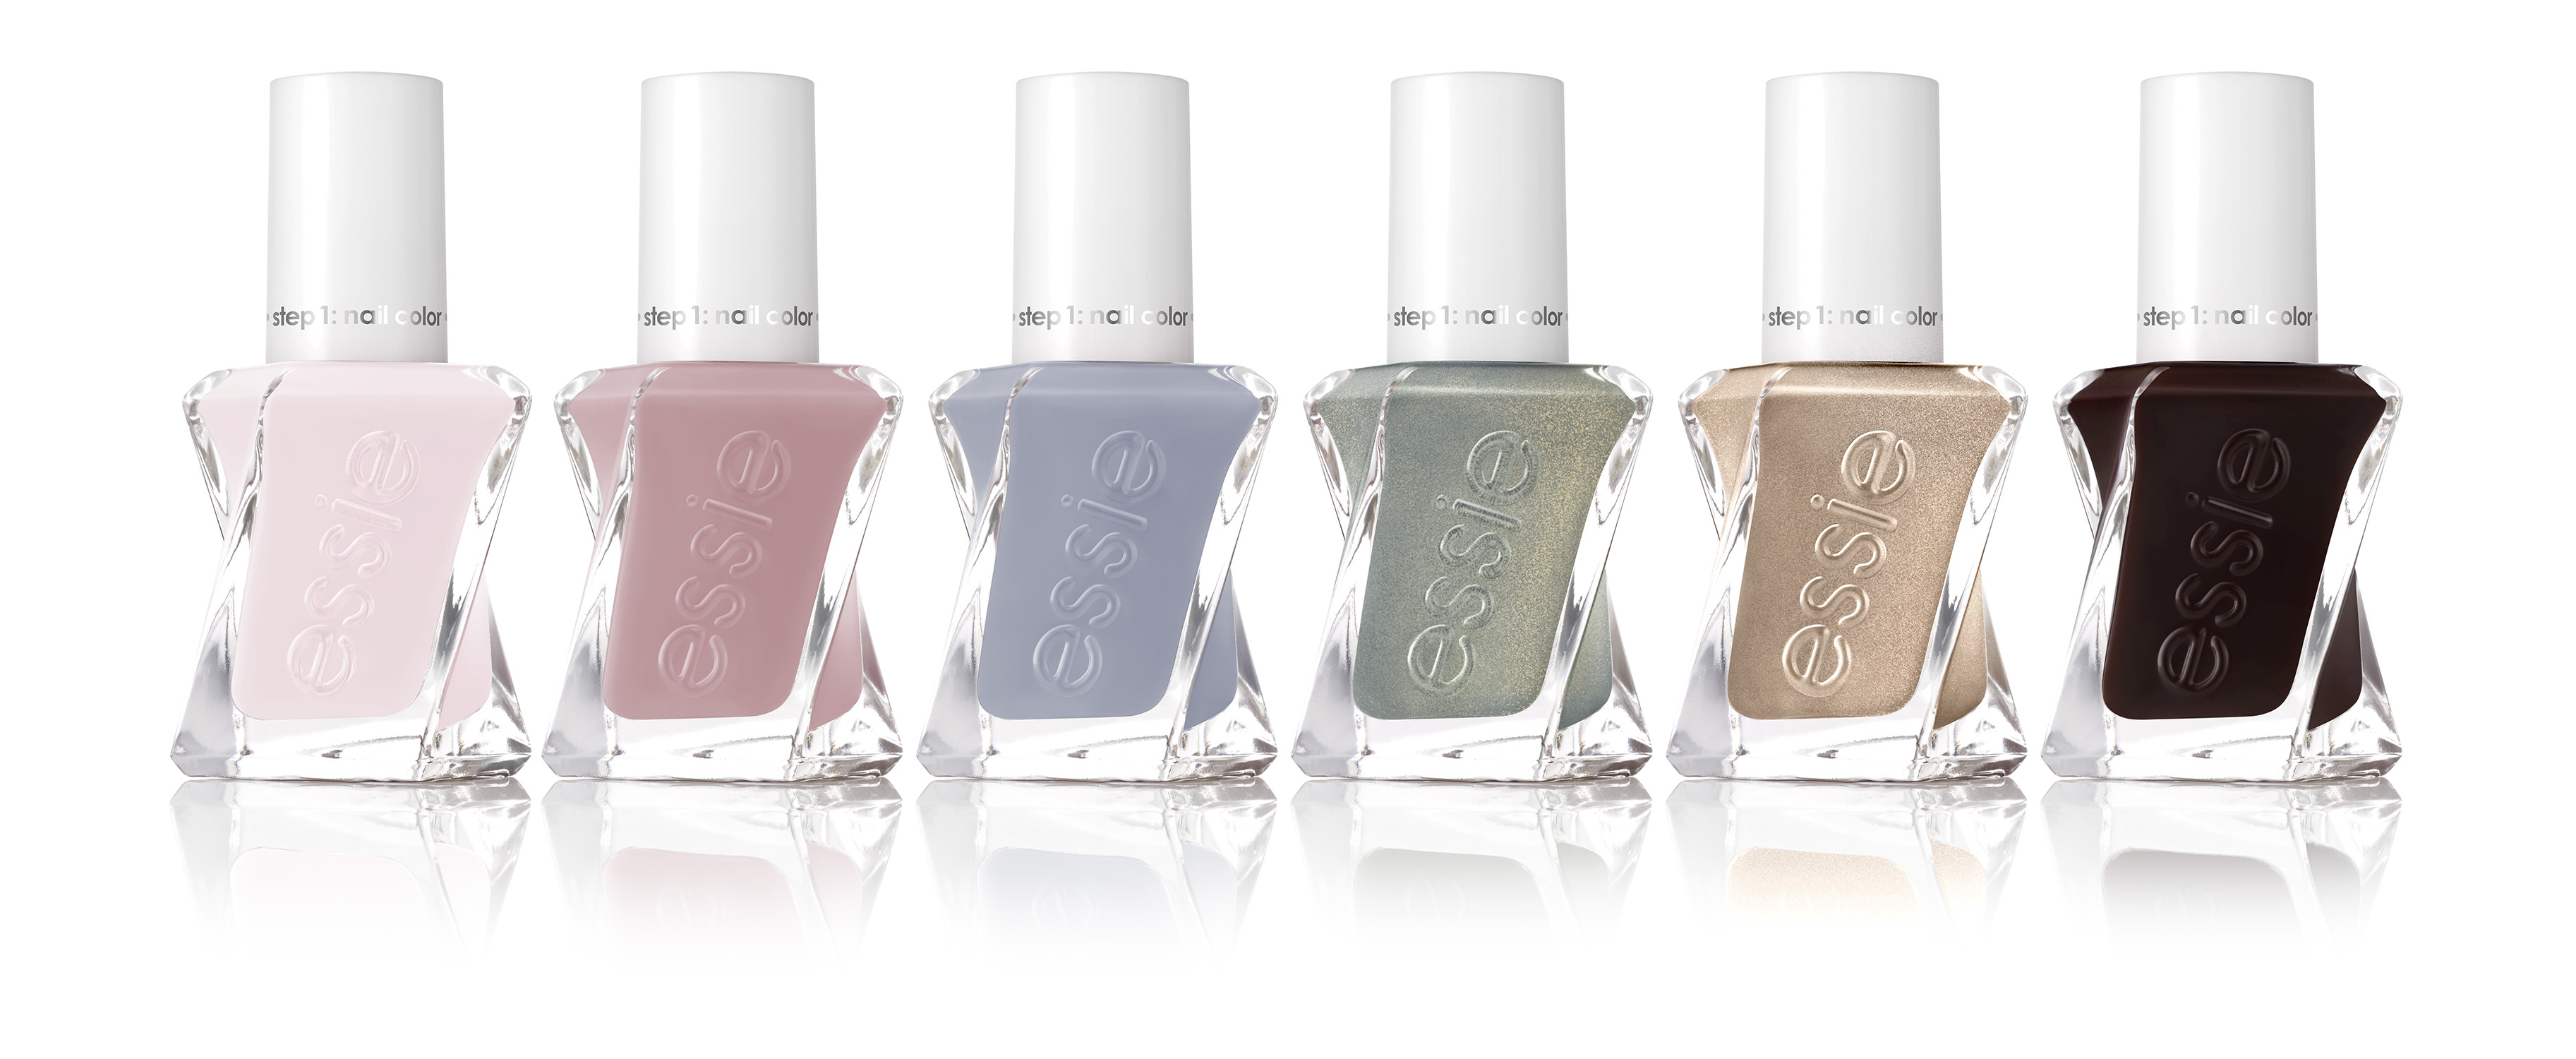 Fairytales Come to Life with Essie Gel Couture Enchanted Collection